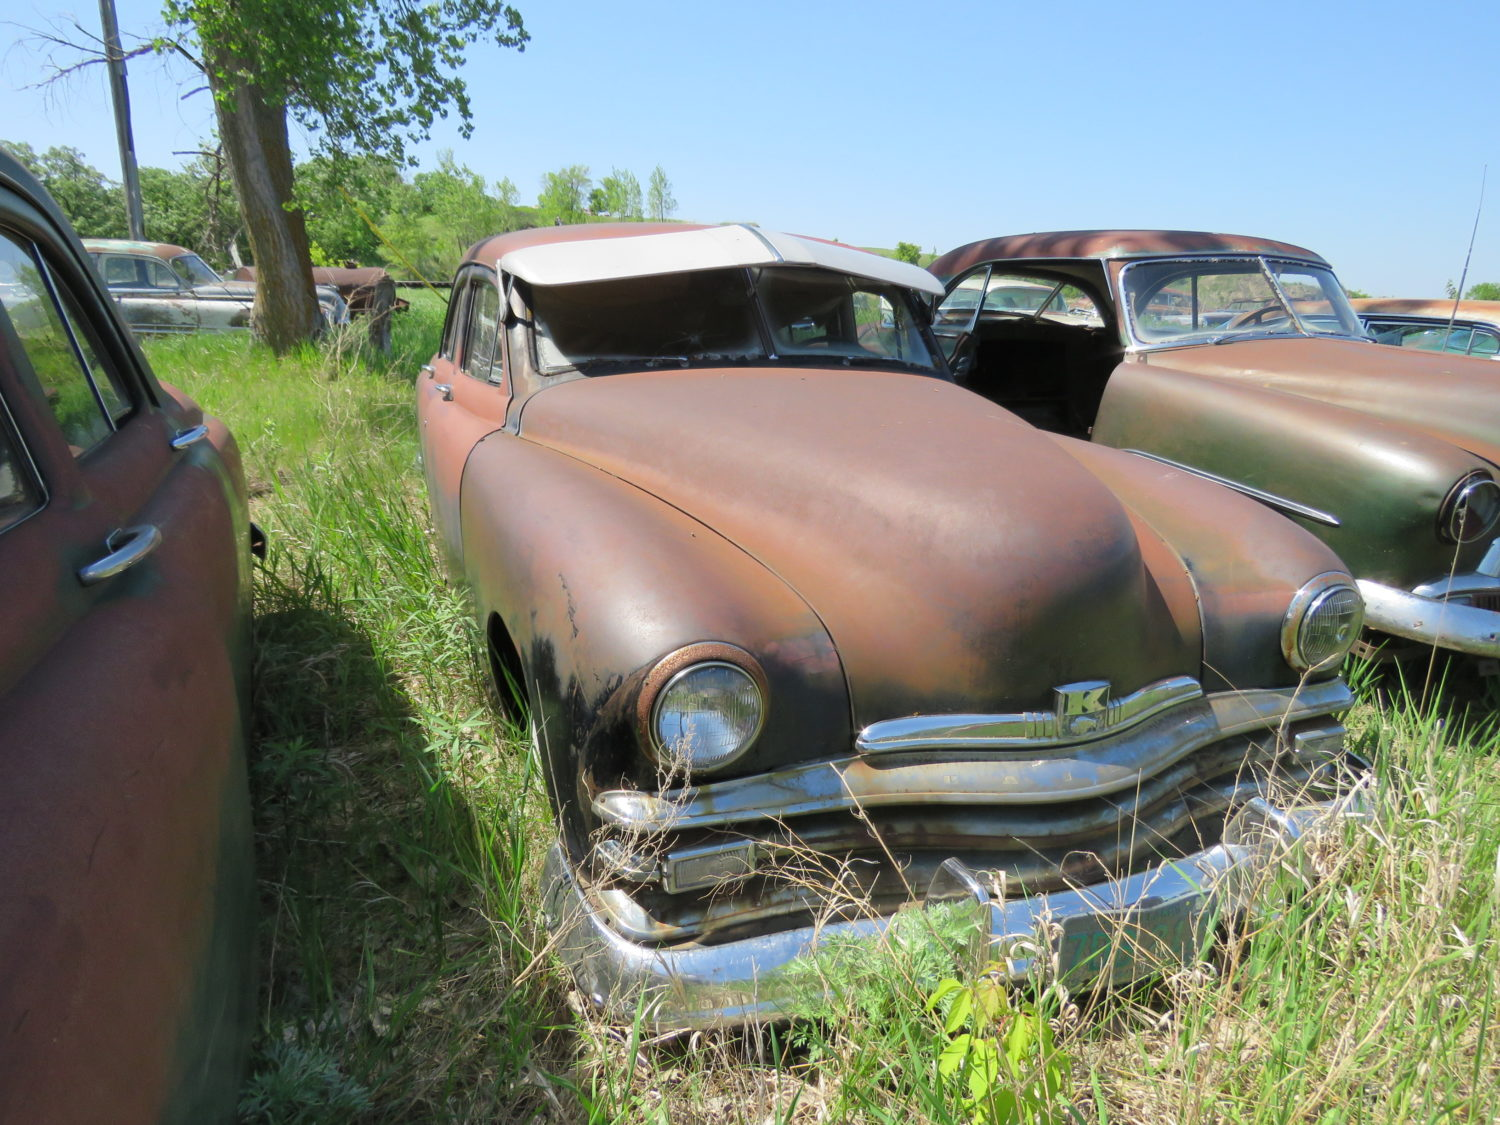 Shop Equipment, Tools, 4-Wheeler, Household & handful of Collector Cars- James Graham Estate - image 6